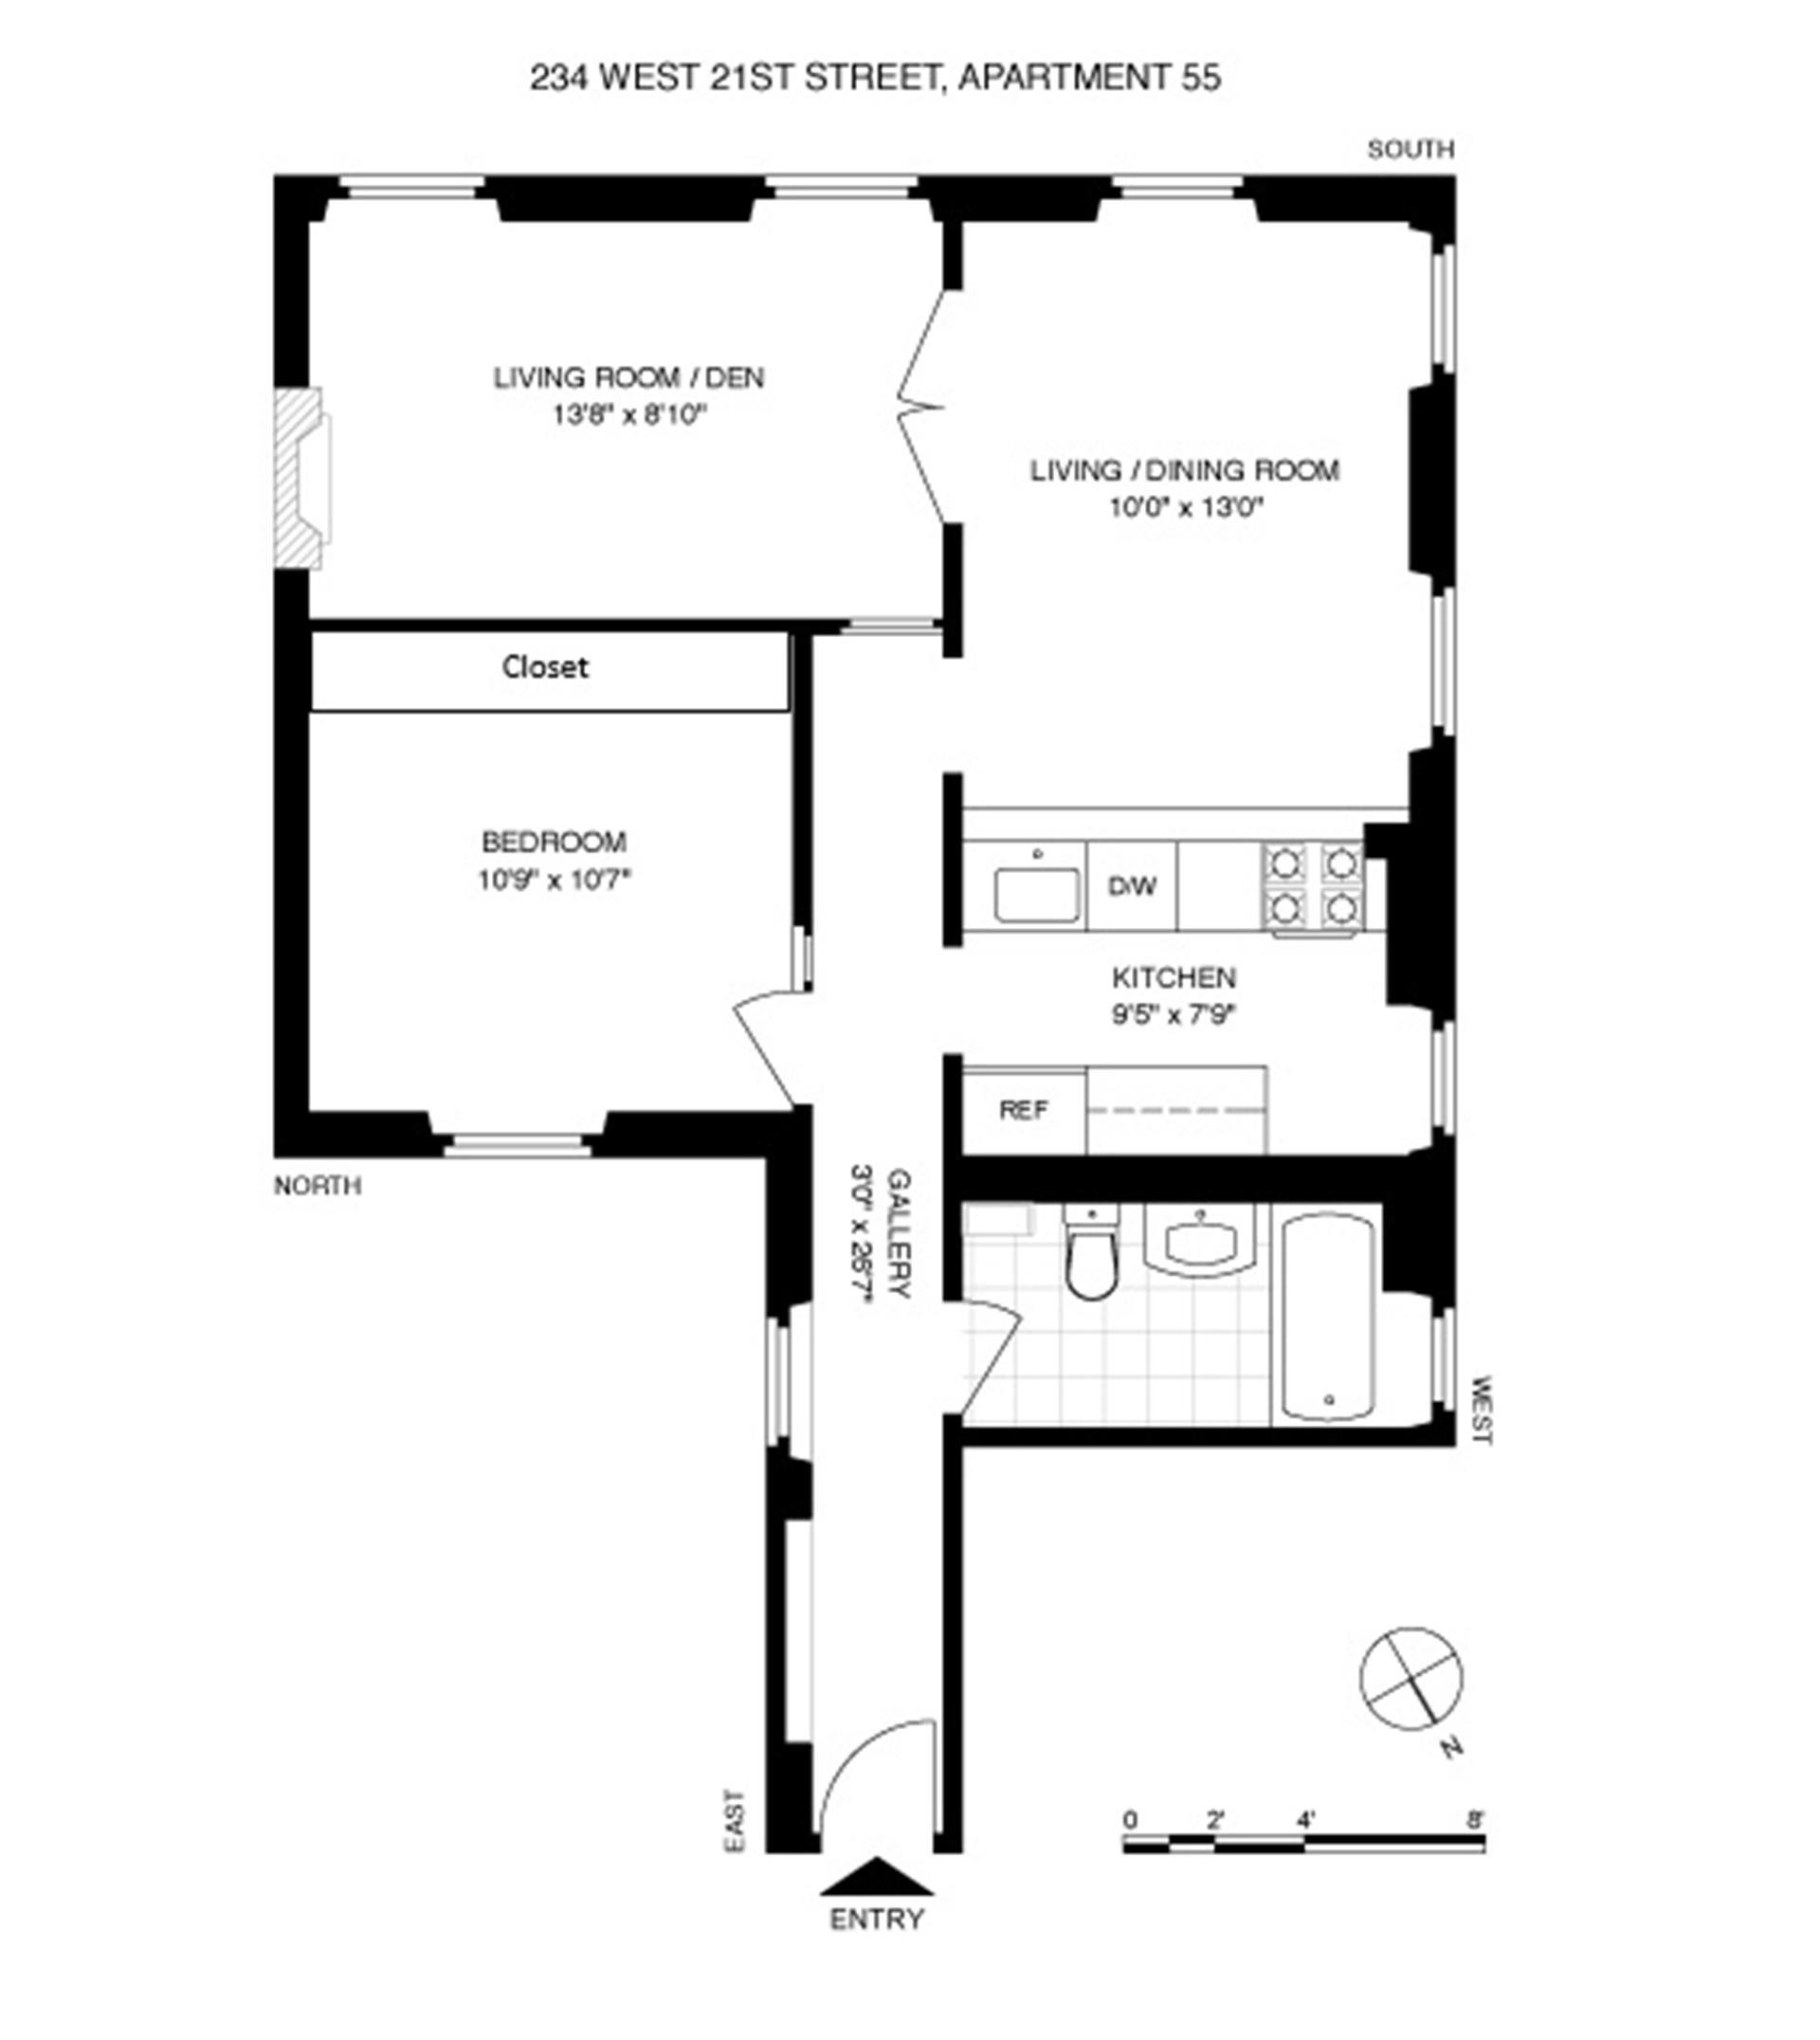 Floor plan of 234 W 21 St Owners Corp., 234 West 21st Street, 55 - Chelsea, New York